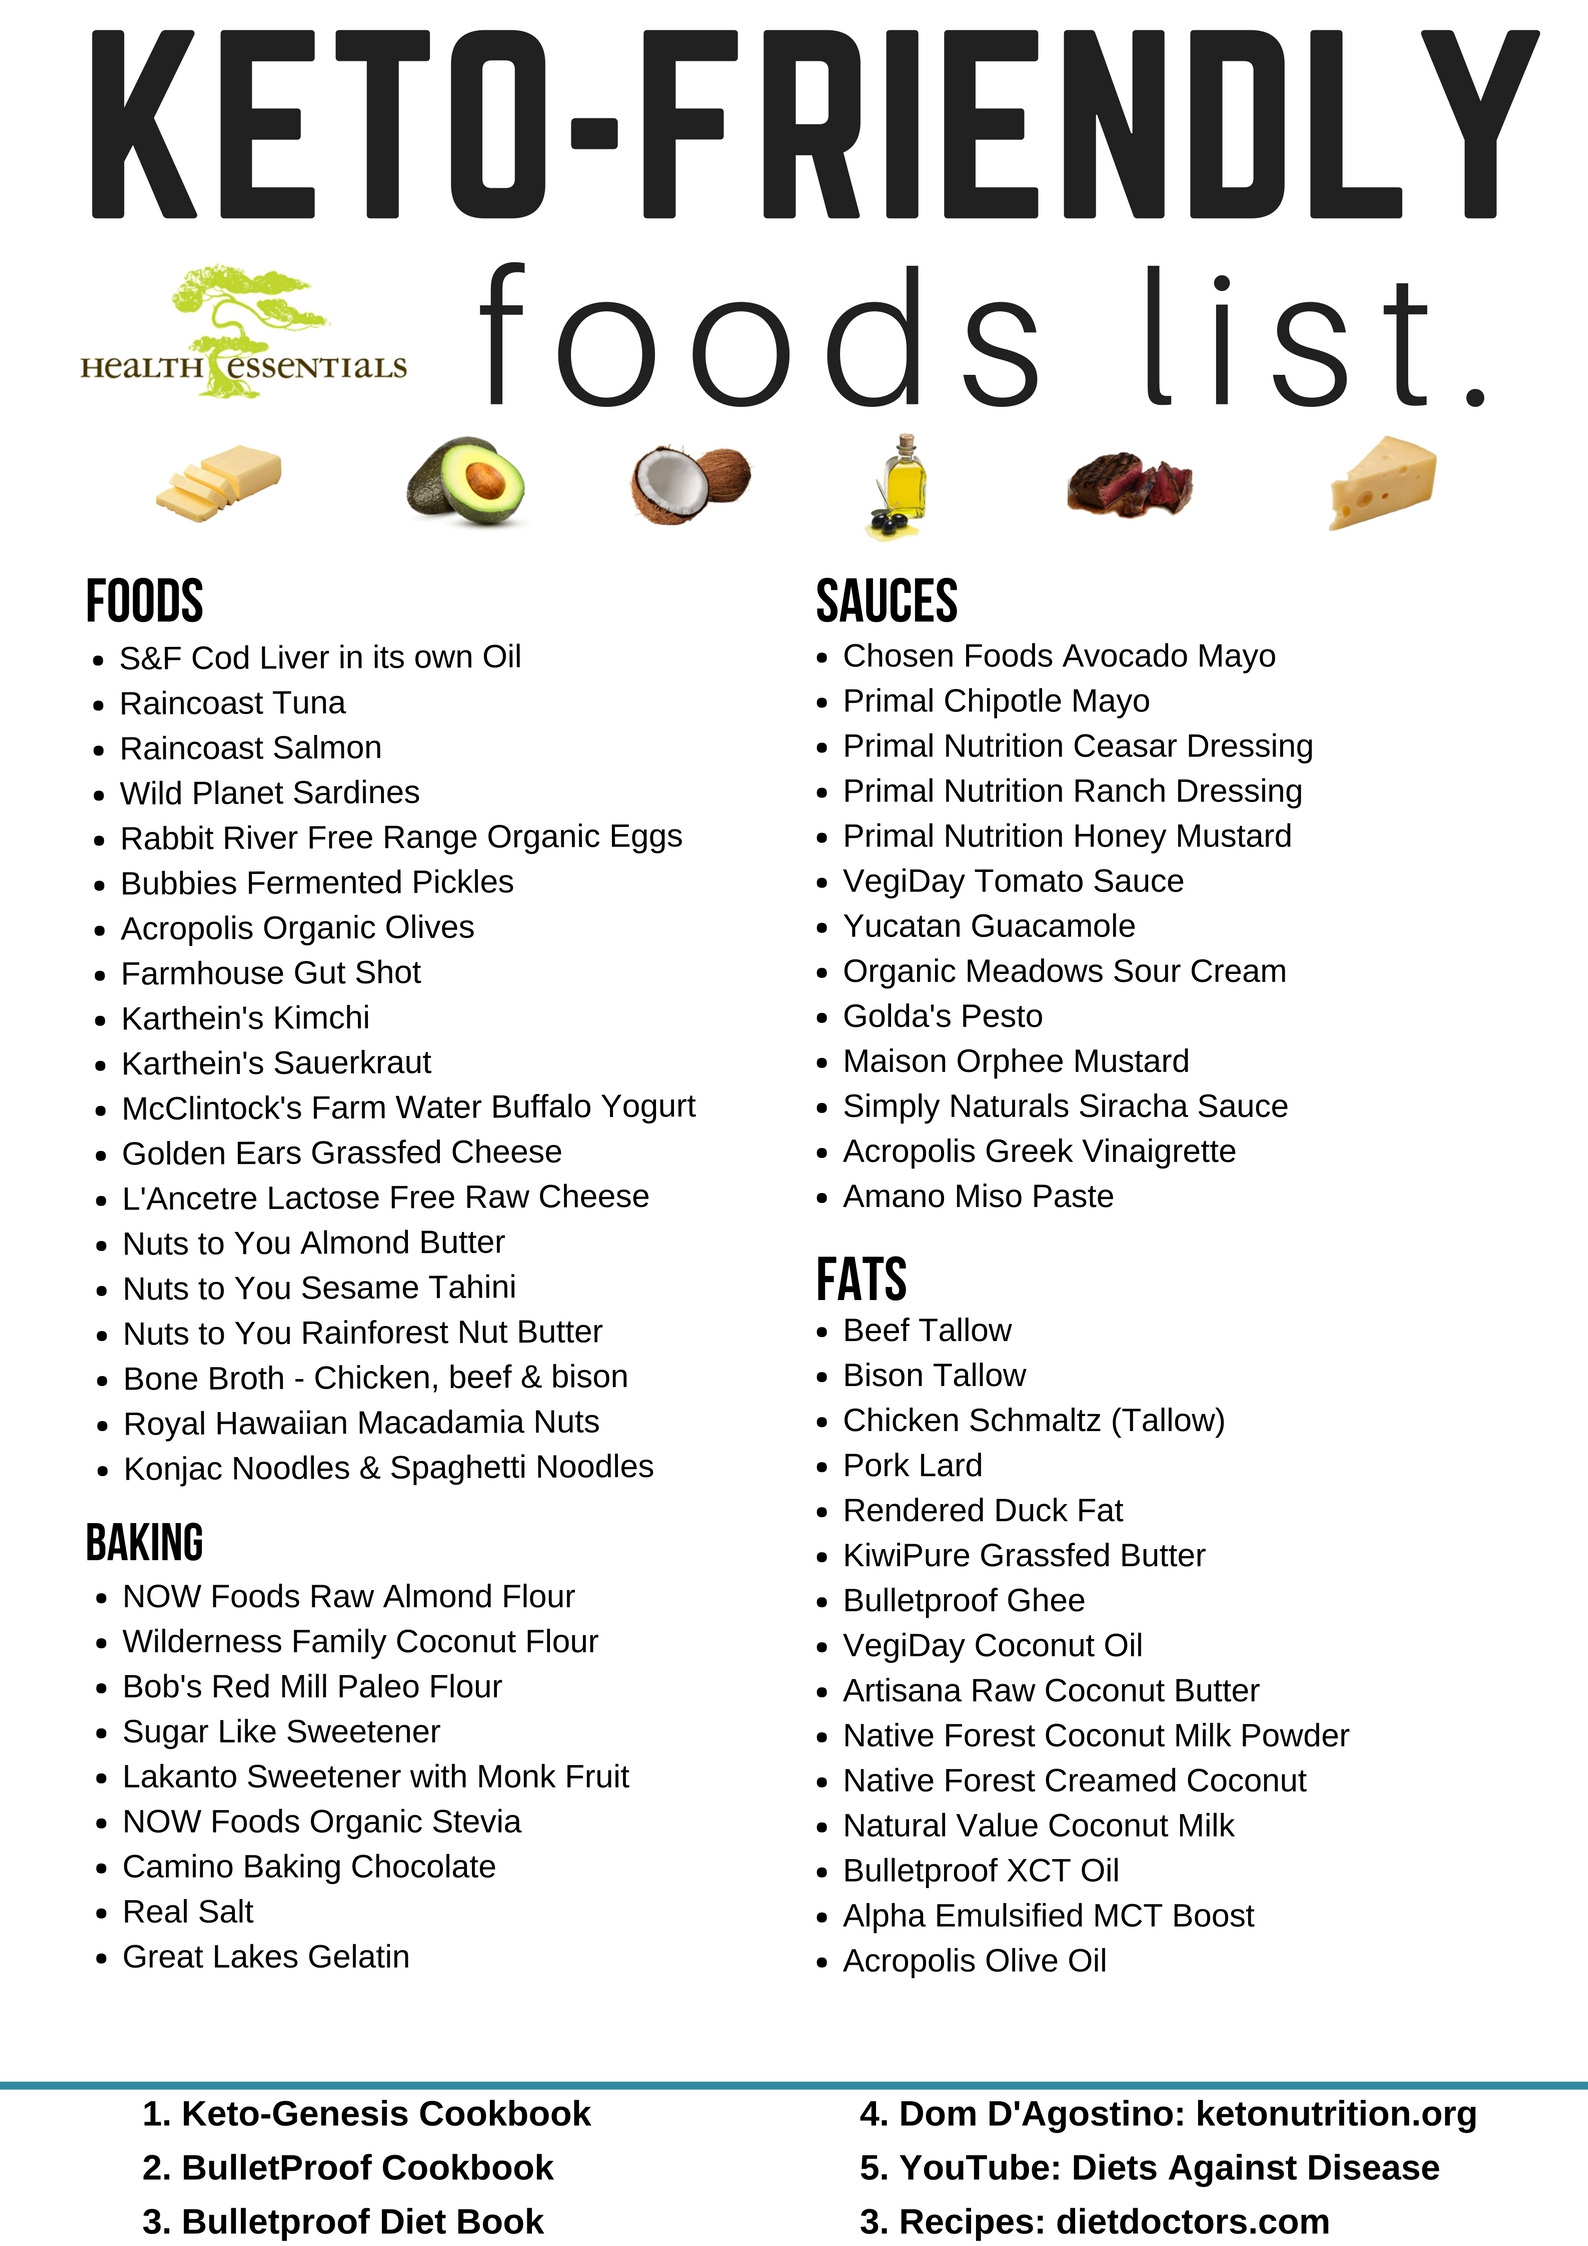 Keto Friendly Foods - Health Essentials